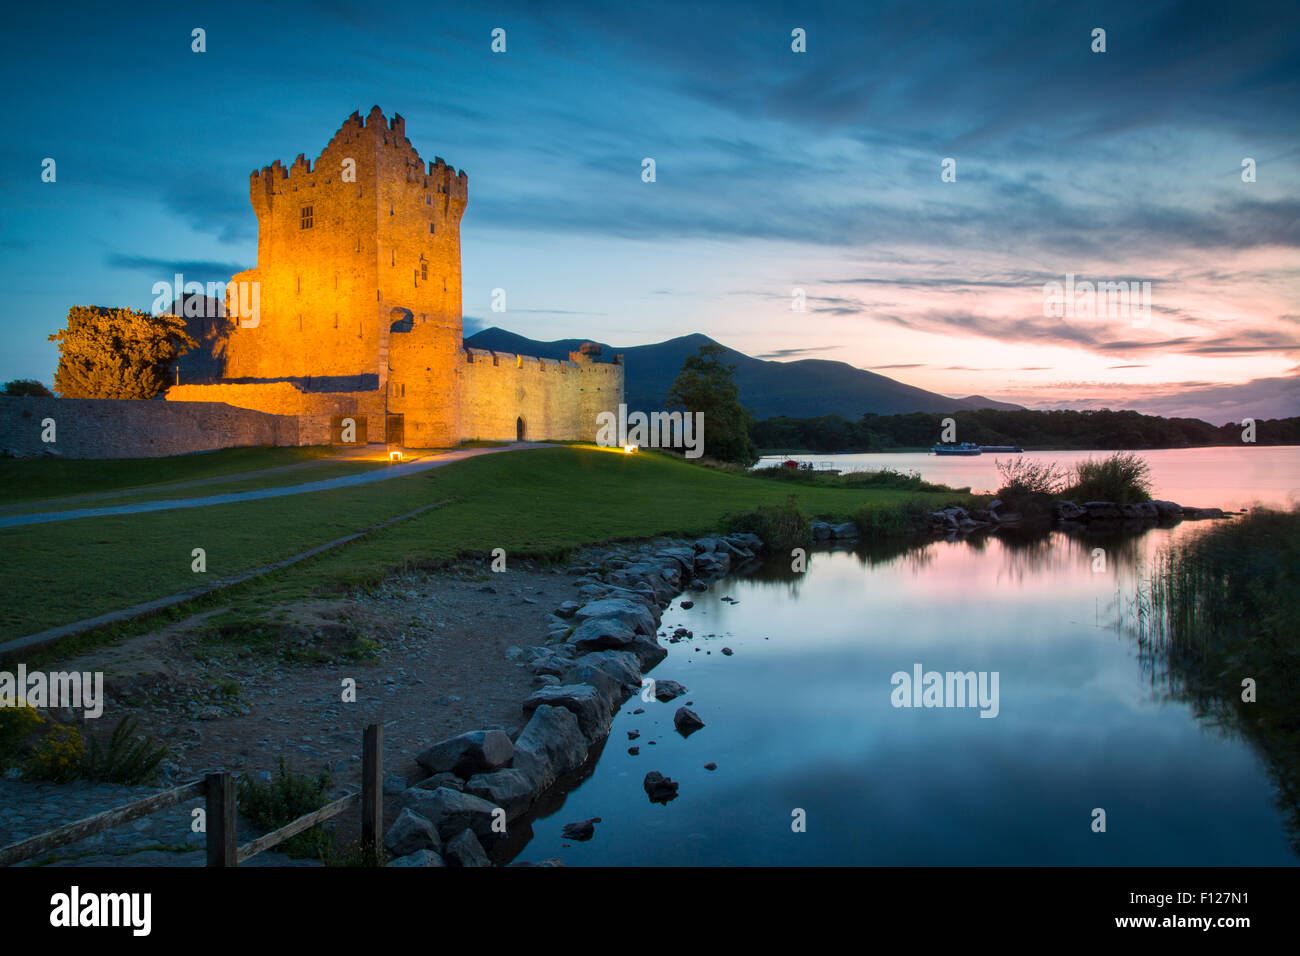 Twilight over Ross Castle (b. 15th Century) on Lough Leane near Killarney, County Kerry, Ireland - Stock Image